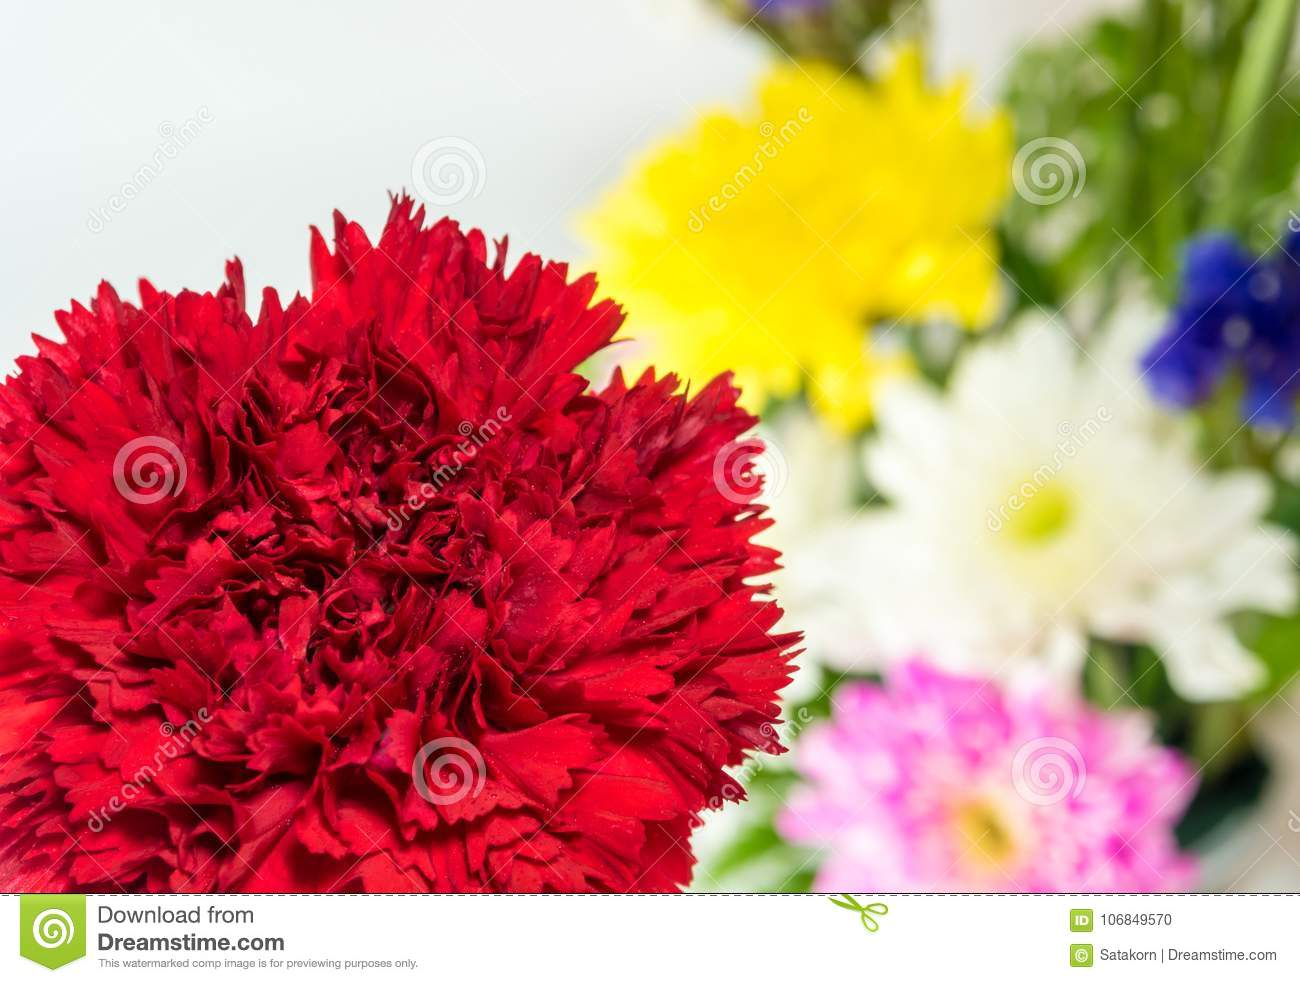 Red Carnation And Chrysanthemum Background Stock Photo - Image of ...